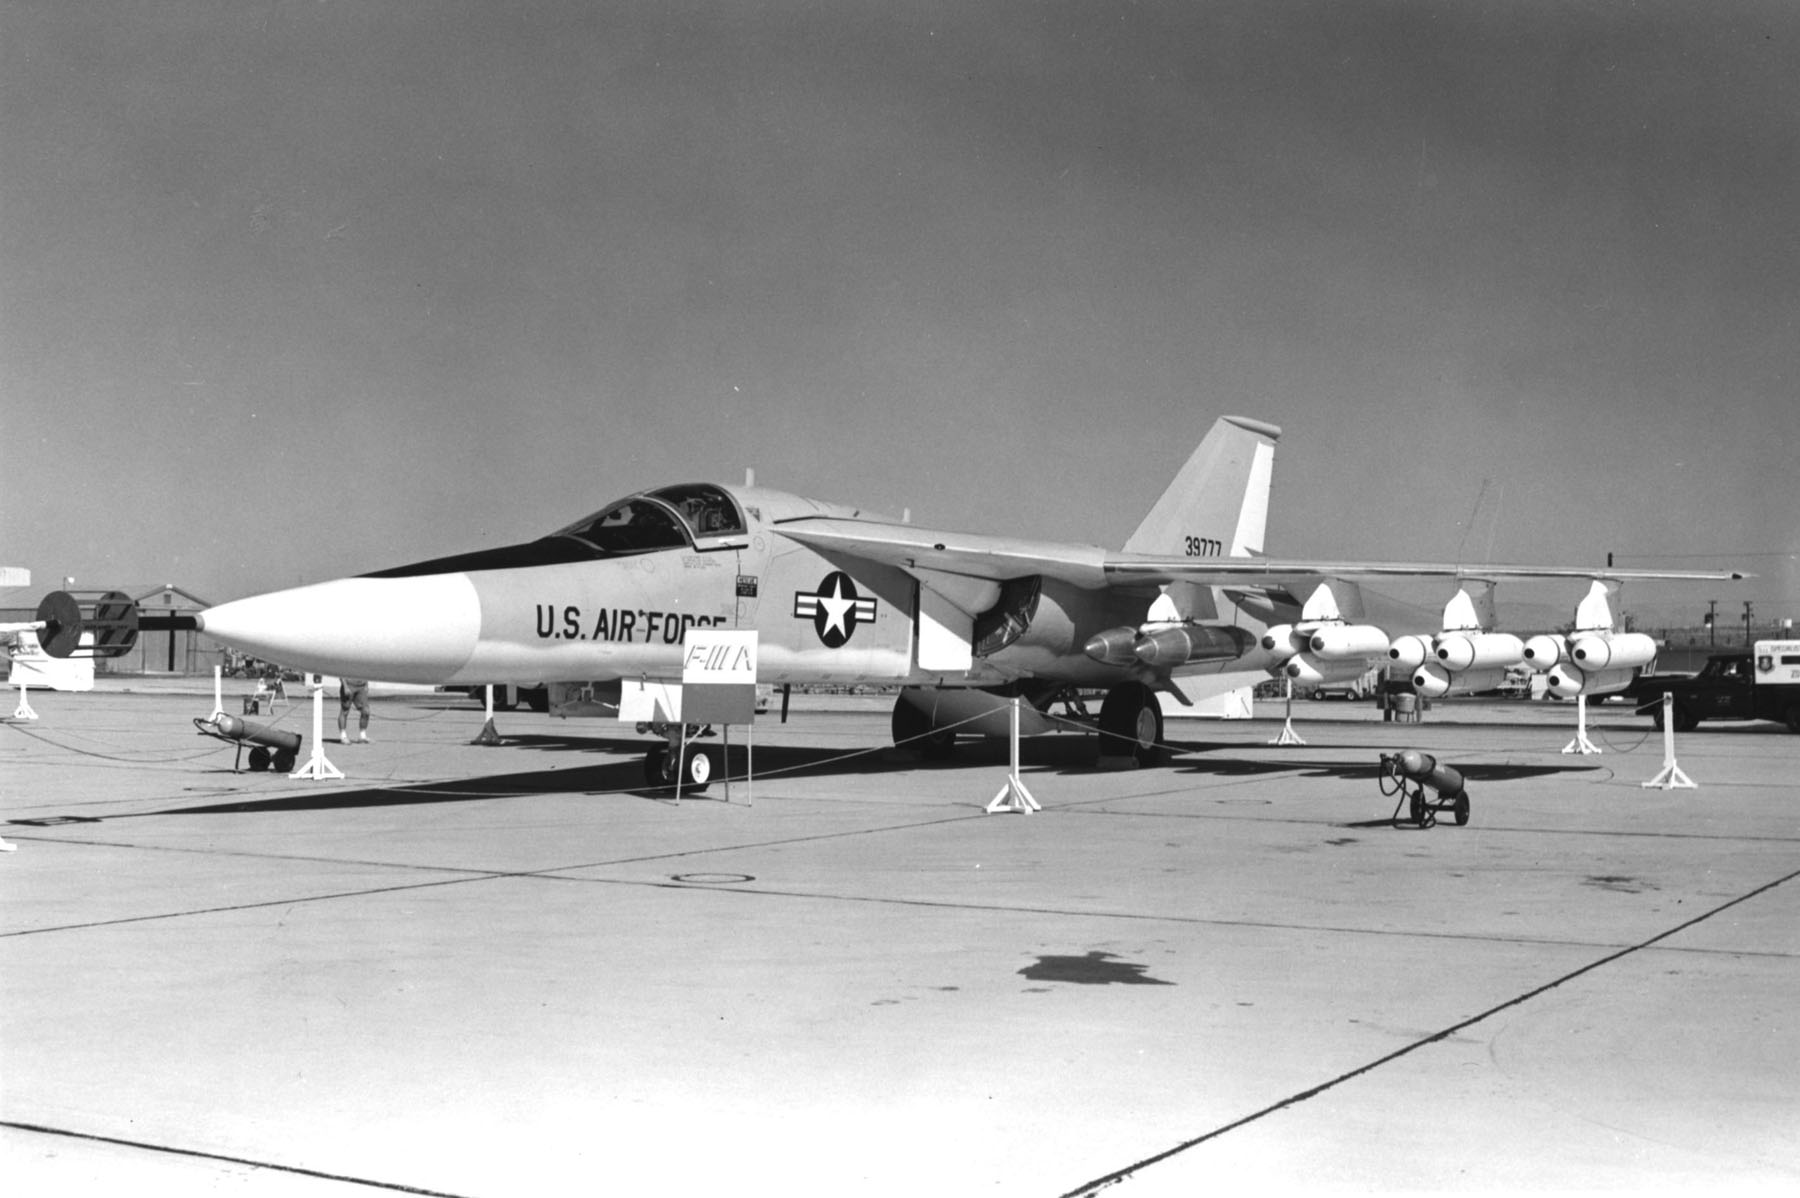 F-111A CAS load - Jet Modeling - ARC Discussion Forums